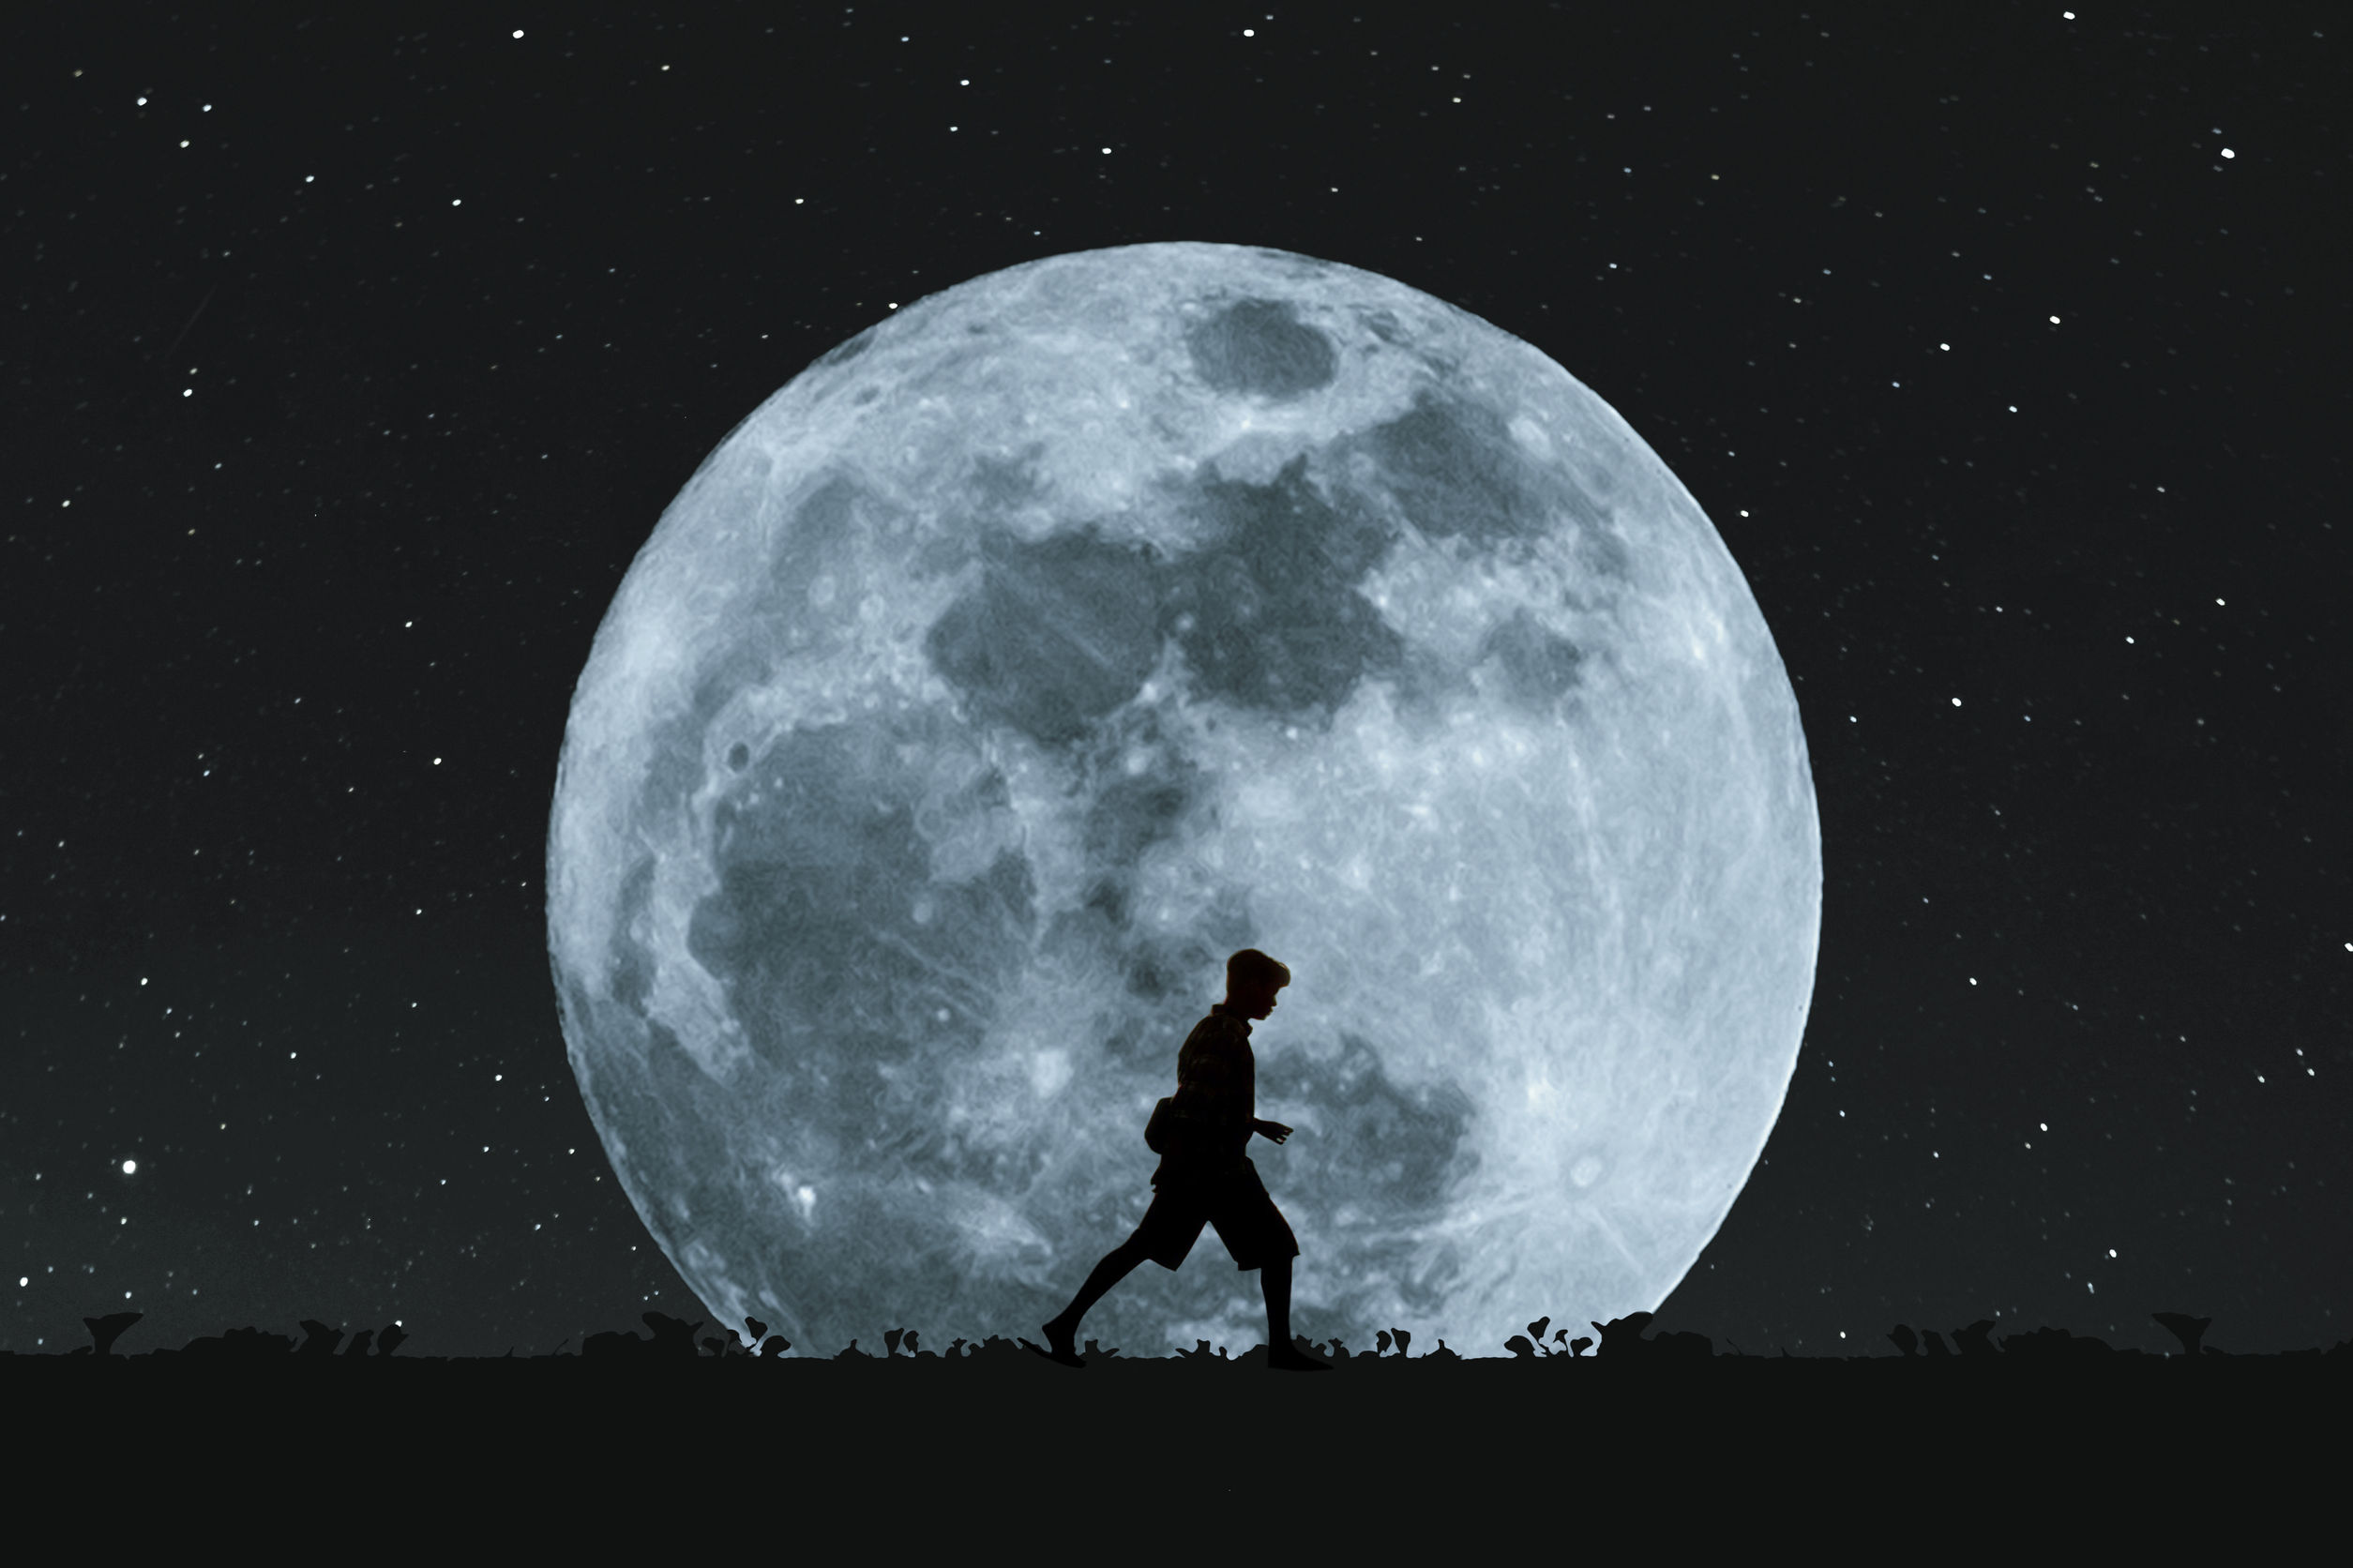 white moon on night sky walking towards better wellbeing